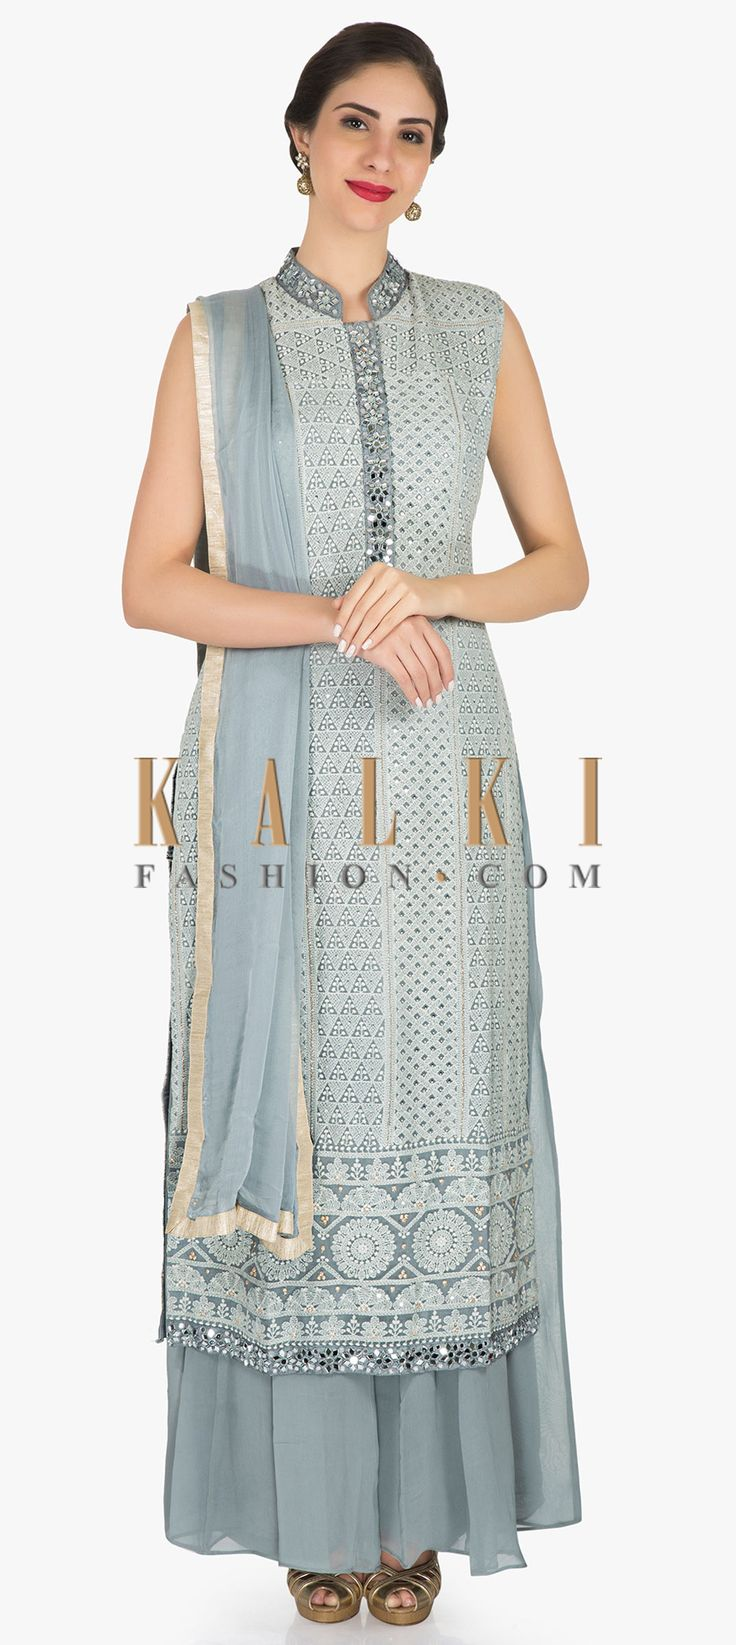 Buy Online from the link below. We ship worldwide (Free Shipping over US$100) Click Anywhere to TagGrey palazzo suit in georgette featuring the heavy thread and gotapatti work only on Kalki This grey palazzo suit showcases a style that is quite minimal yet striking. The suit is amazingly encrusted with heavy thread work embroidery with gotapatti border at the ends and at the collars. The suit is set together with a matching dupatta. Slight variation in color is possible.